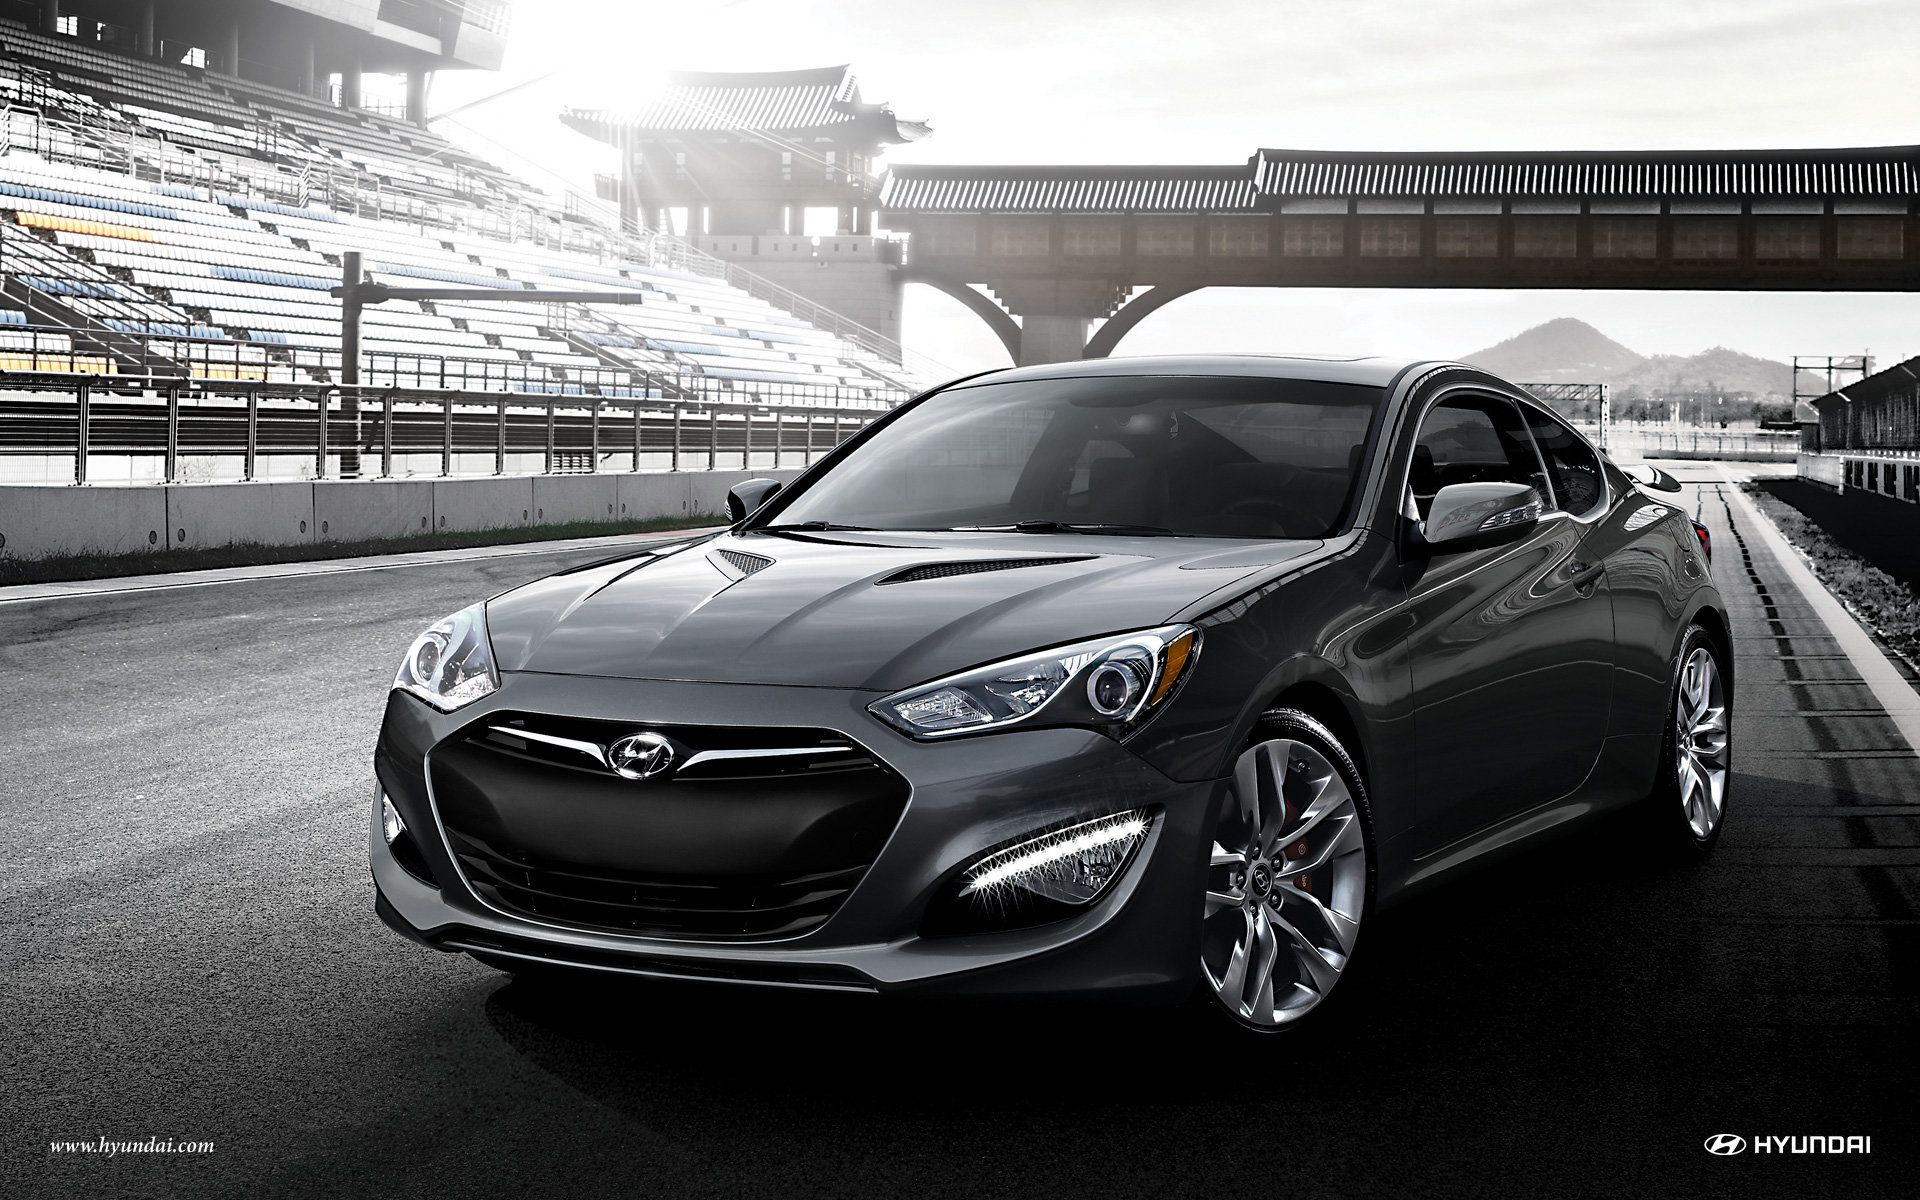 The 2013 hyundai genesis coupe has it all it s powerful it s stylish it s safe and it s fun to drive